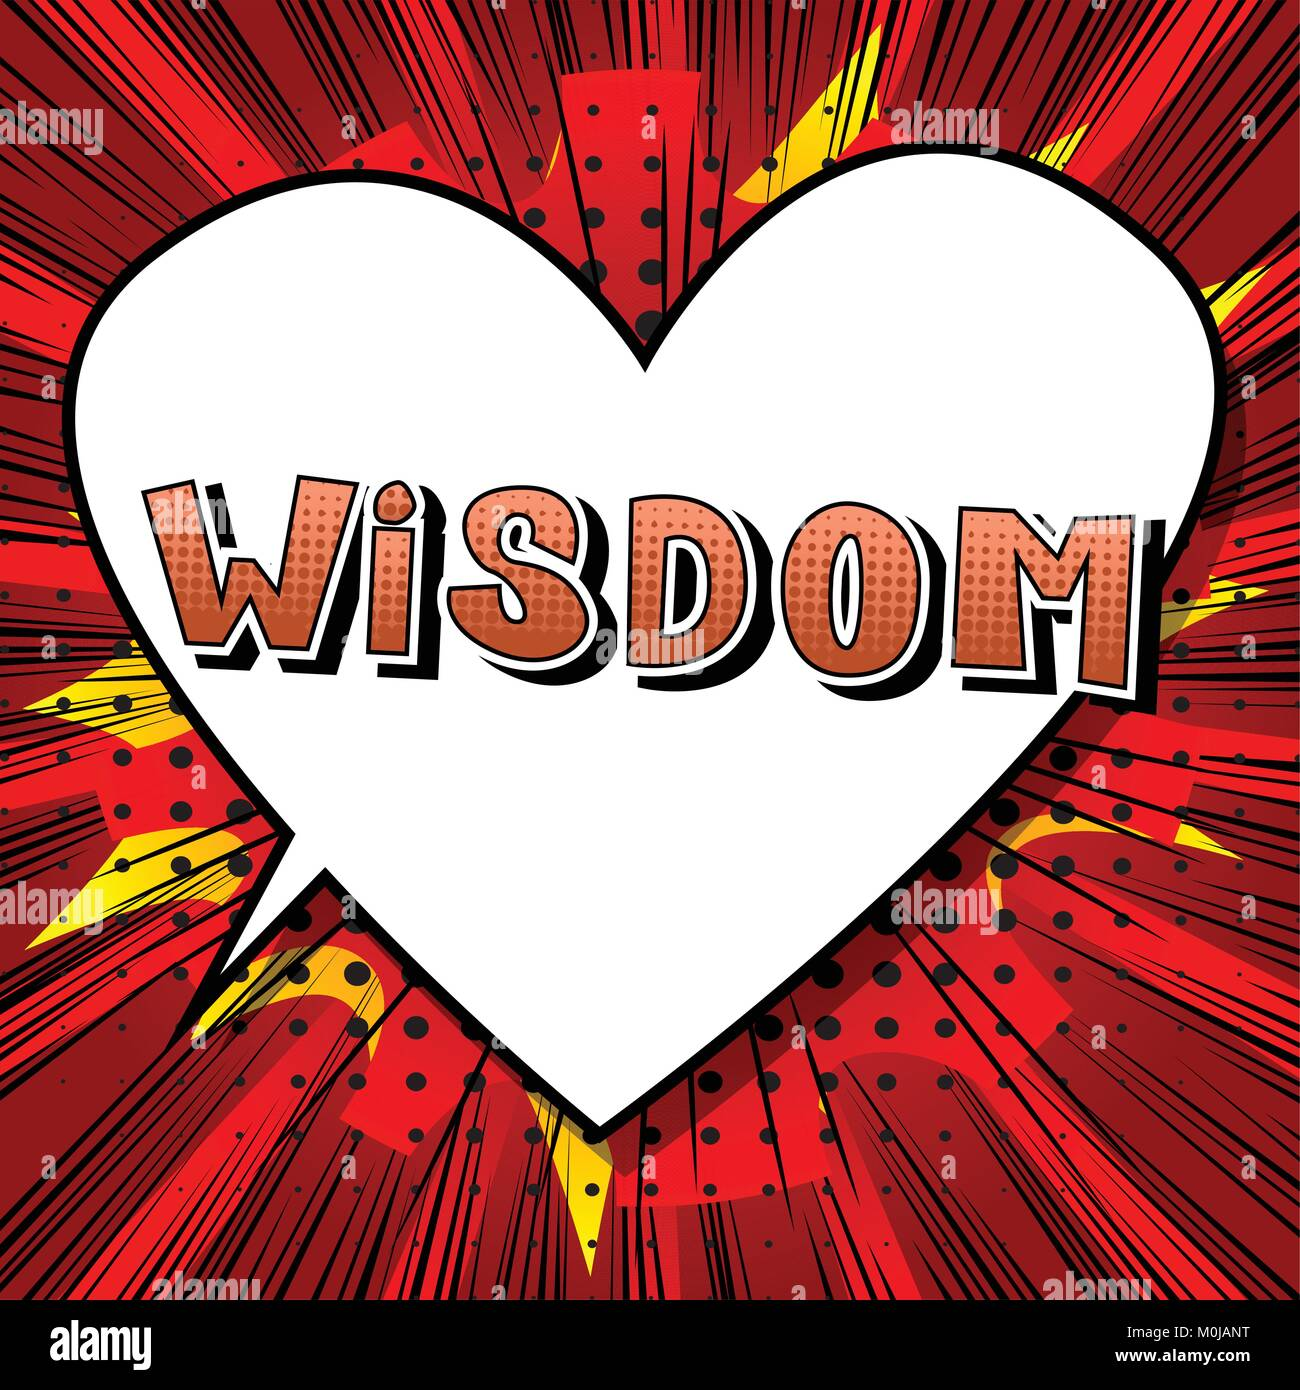 Wisdom - Comic book style word on abstract background. - Stock Vector